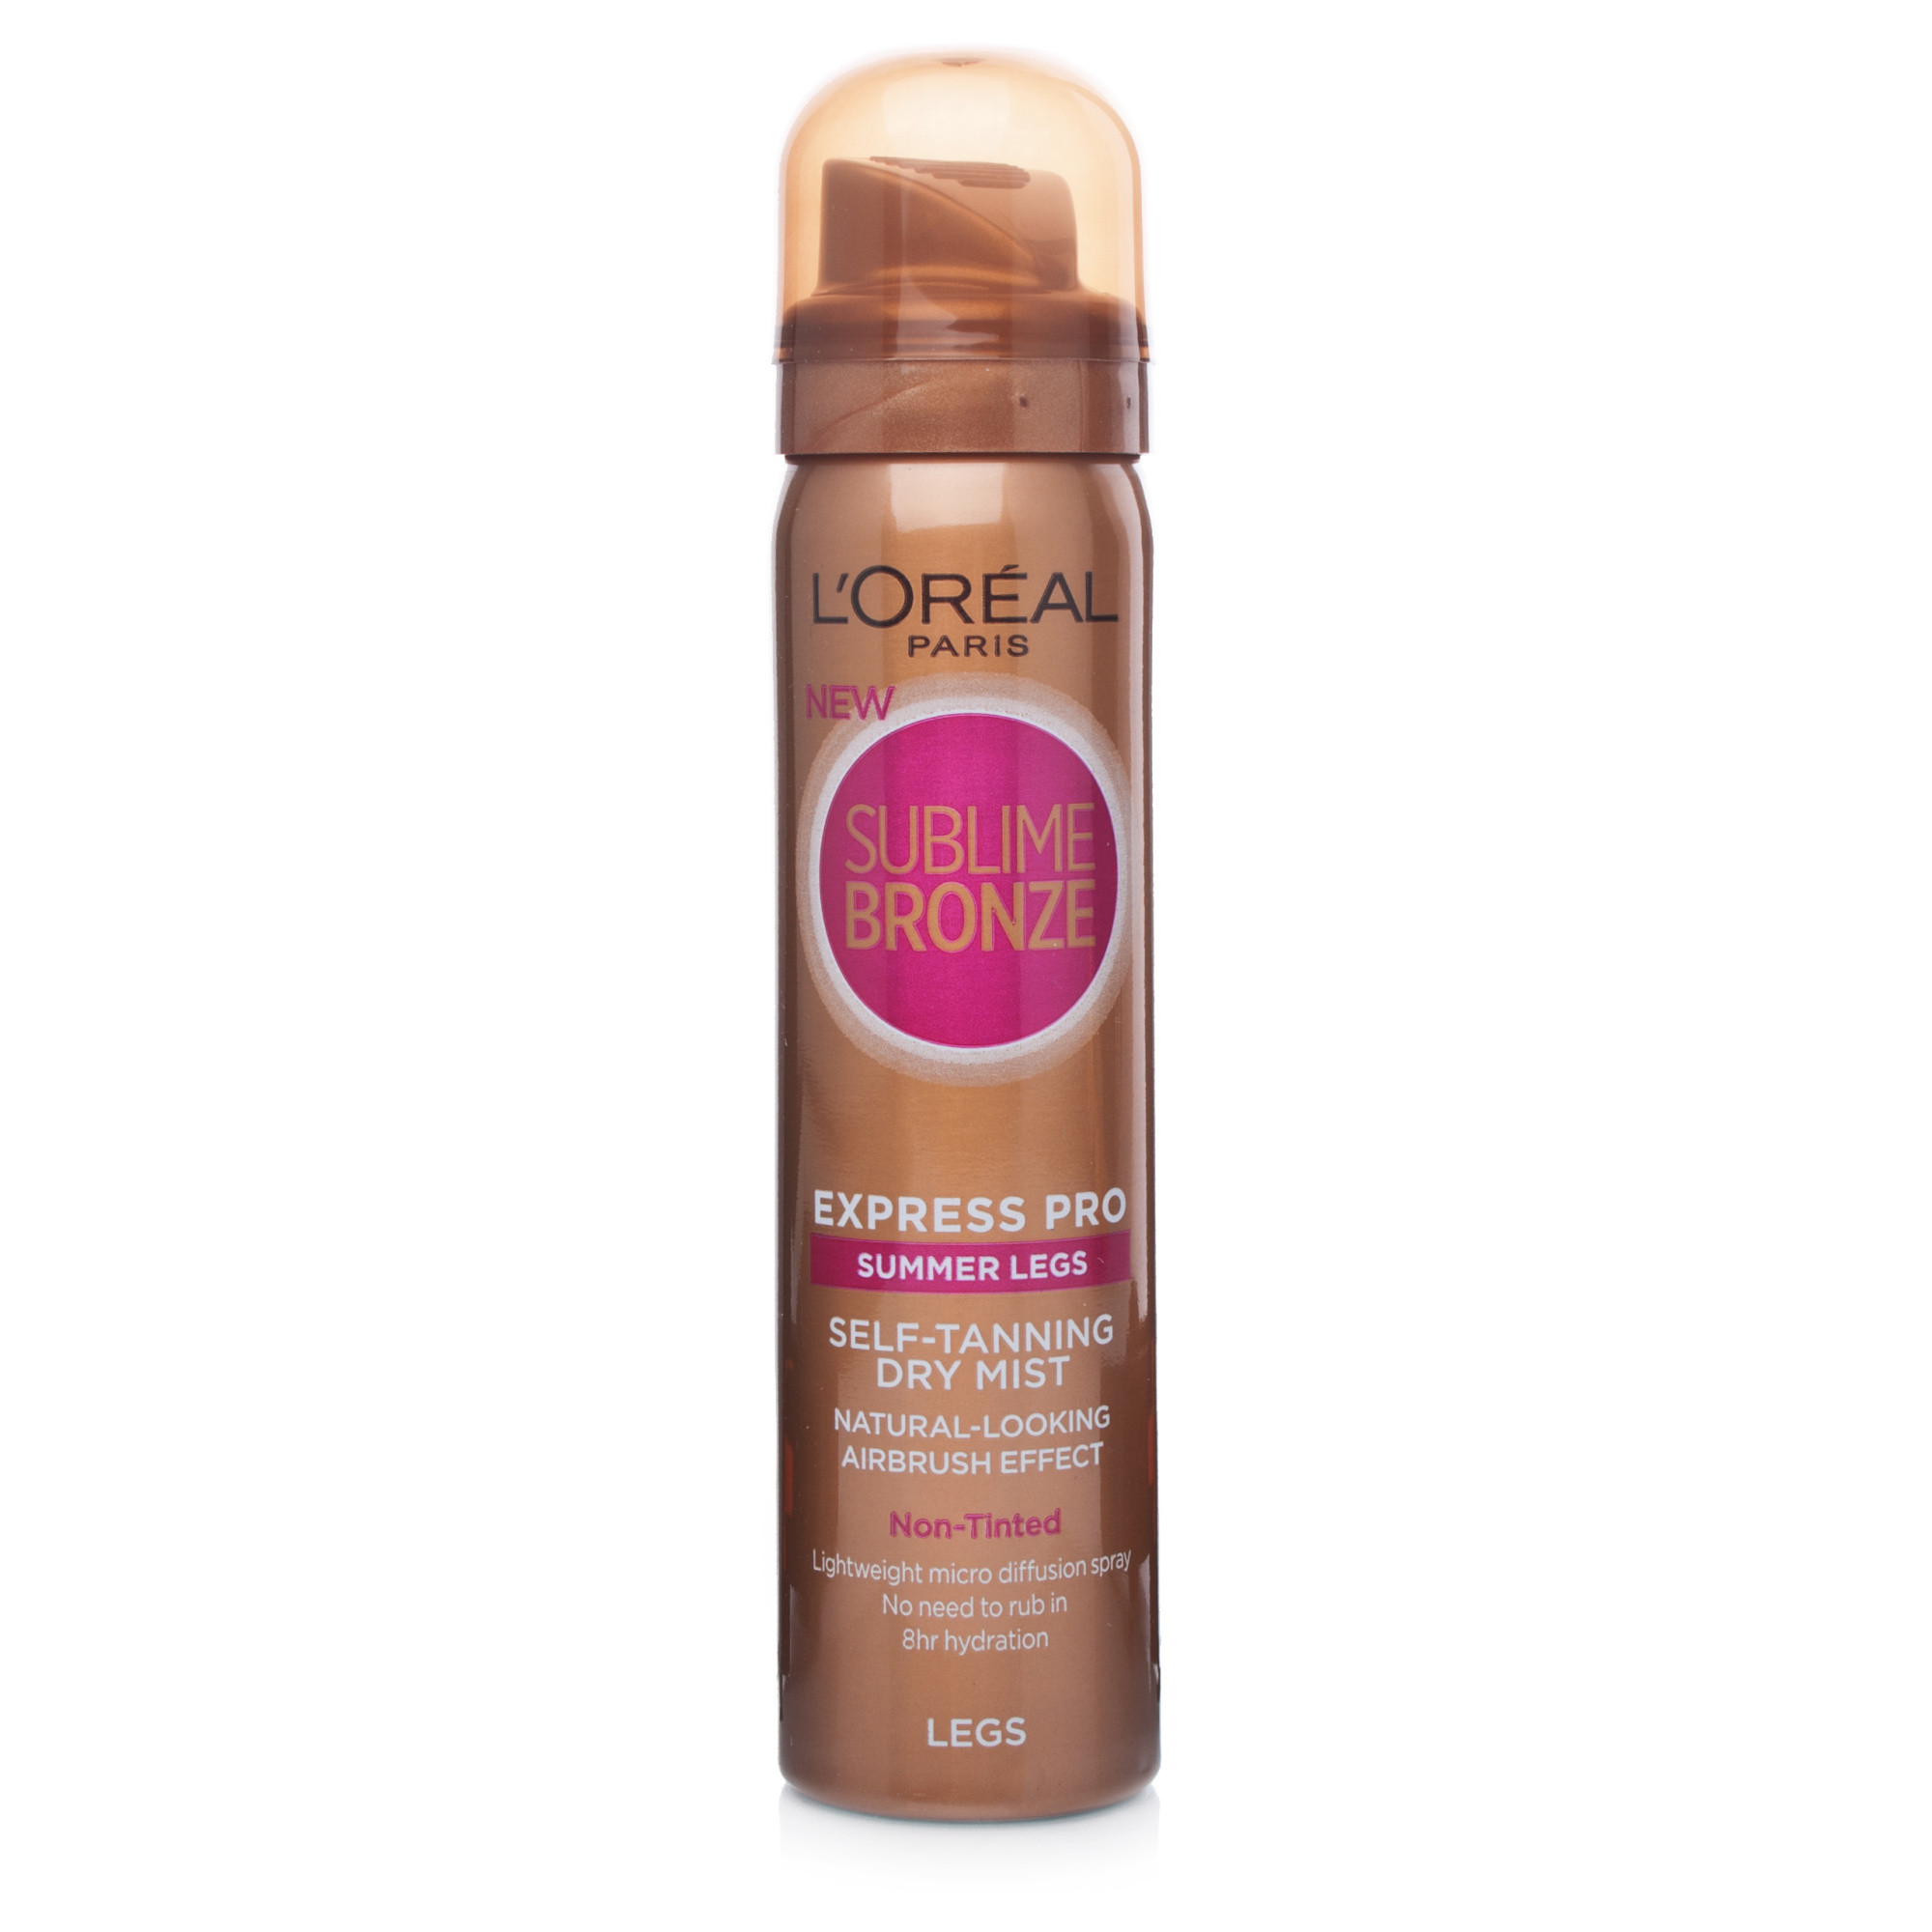 L'Oreal Sublime Bronze Express Pro Summer Legs Self-Tanning Dry Mist 75ml